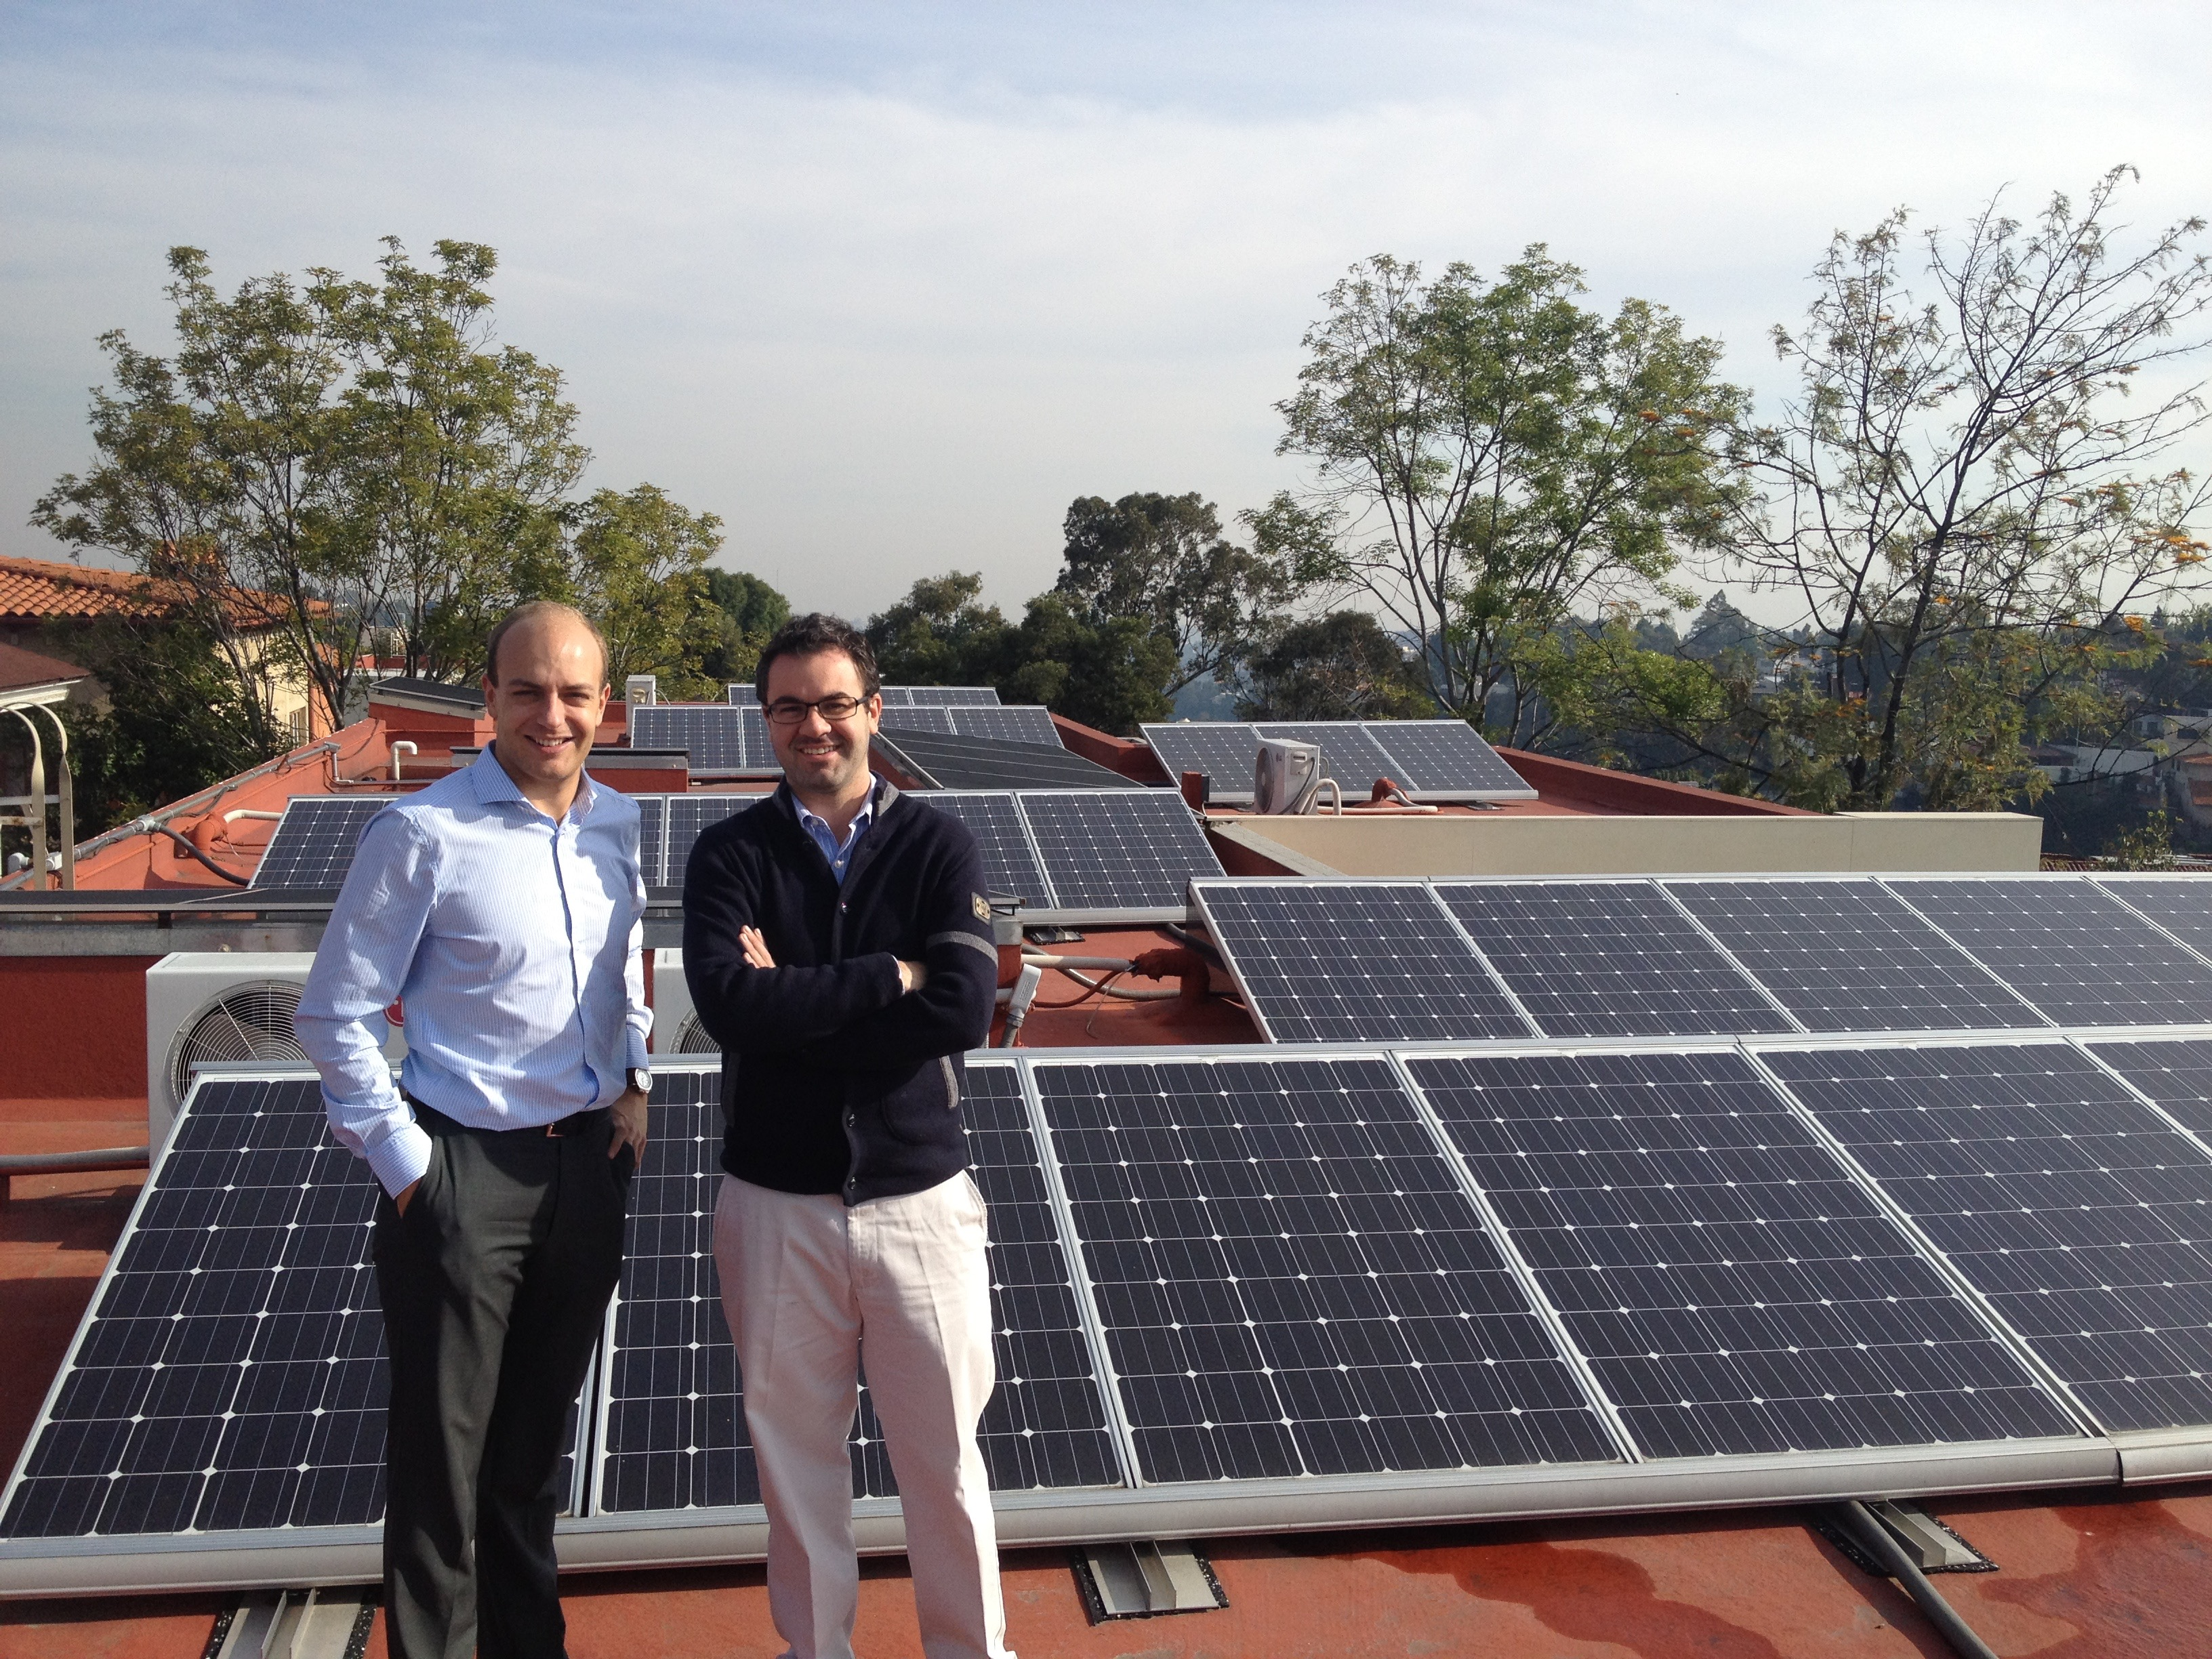 First solar project in Mexico